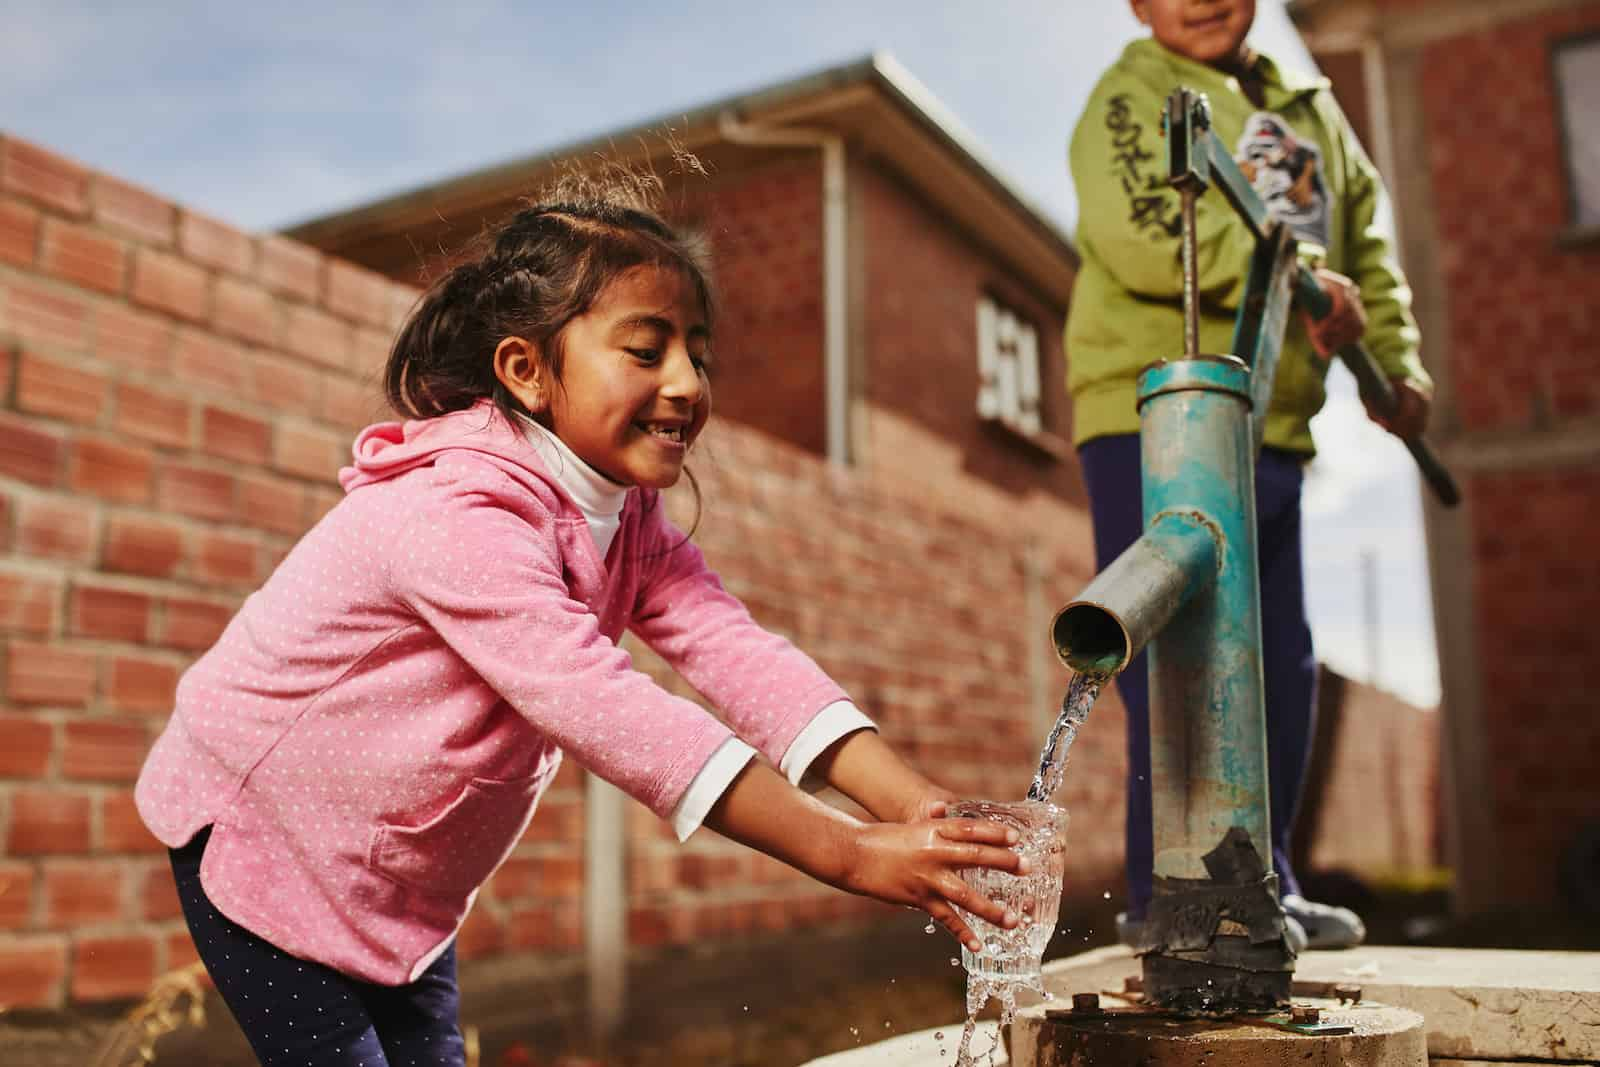 Kids Around the World: A girl gets water from a pump while a boy pumps.